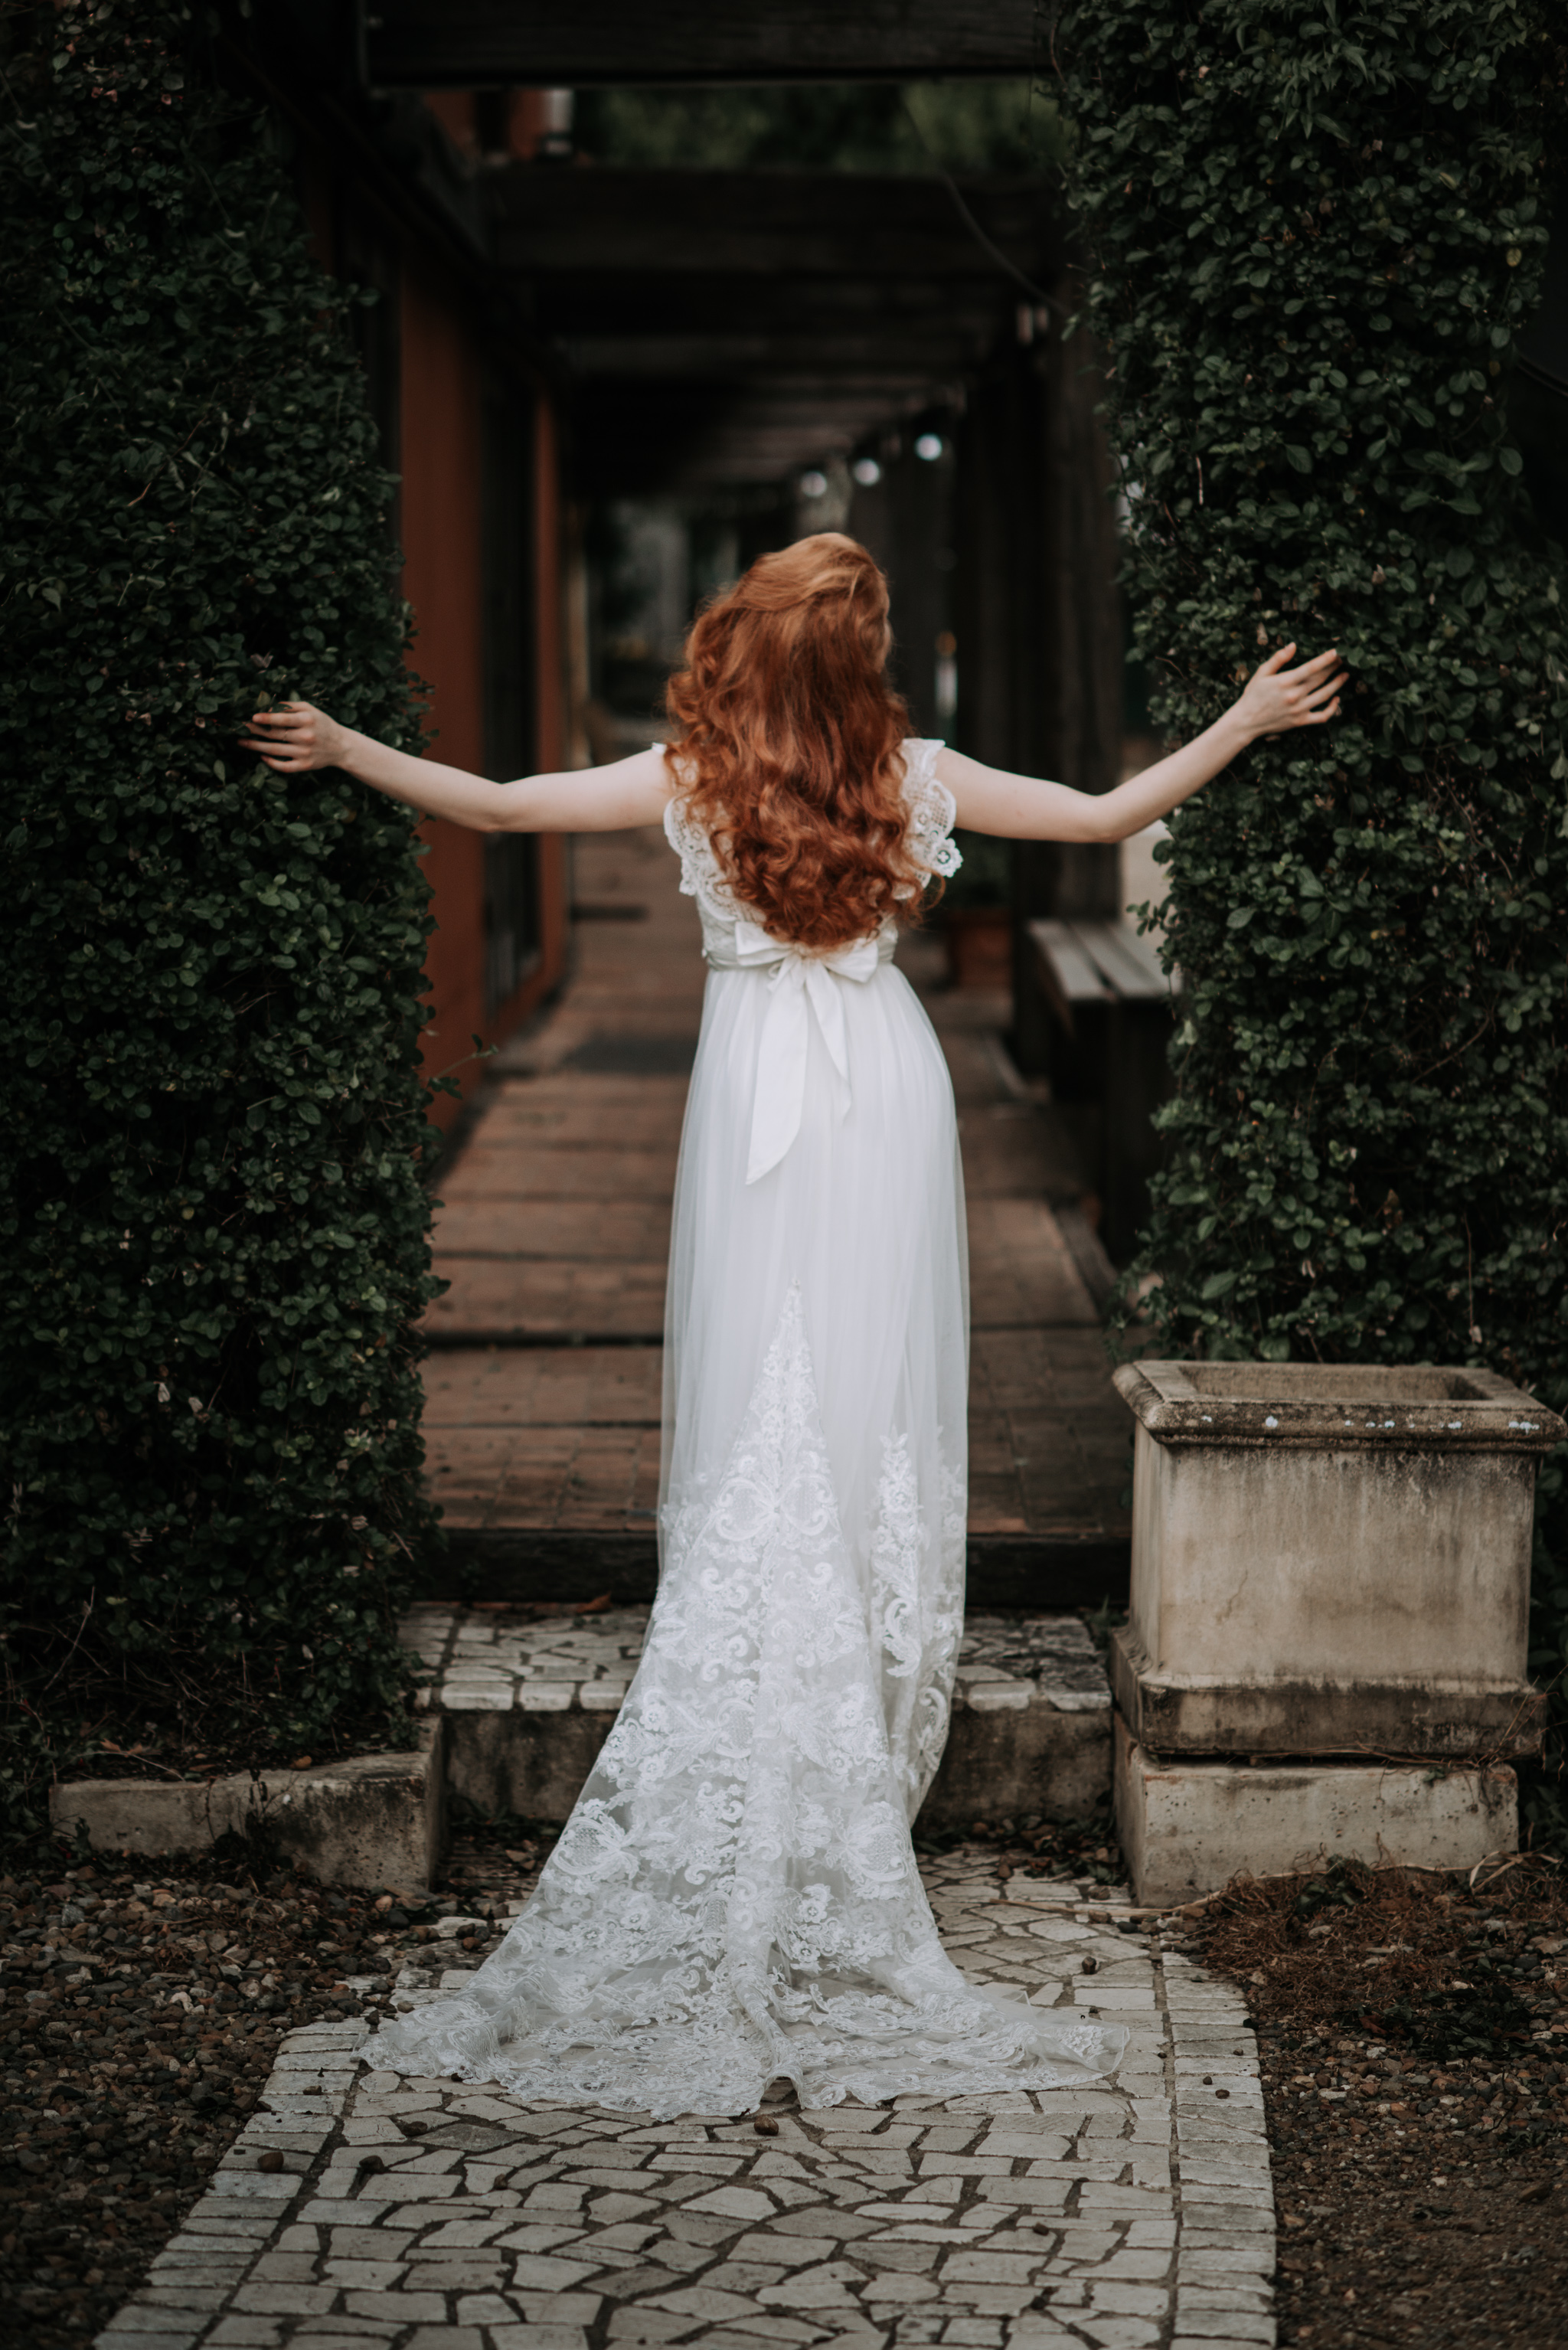 LOVELENSCAPES PHOTOGRAPHY X ANNA CAMPBELL BRIDAL X LEMAE MAKEUP ARTISTRY X BLOOMING LOVELY BOUQUETS X ERIN LIGHTFOOT X LITTLE WHITE COUTURE • 5.jpg